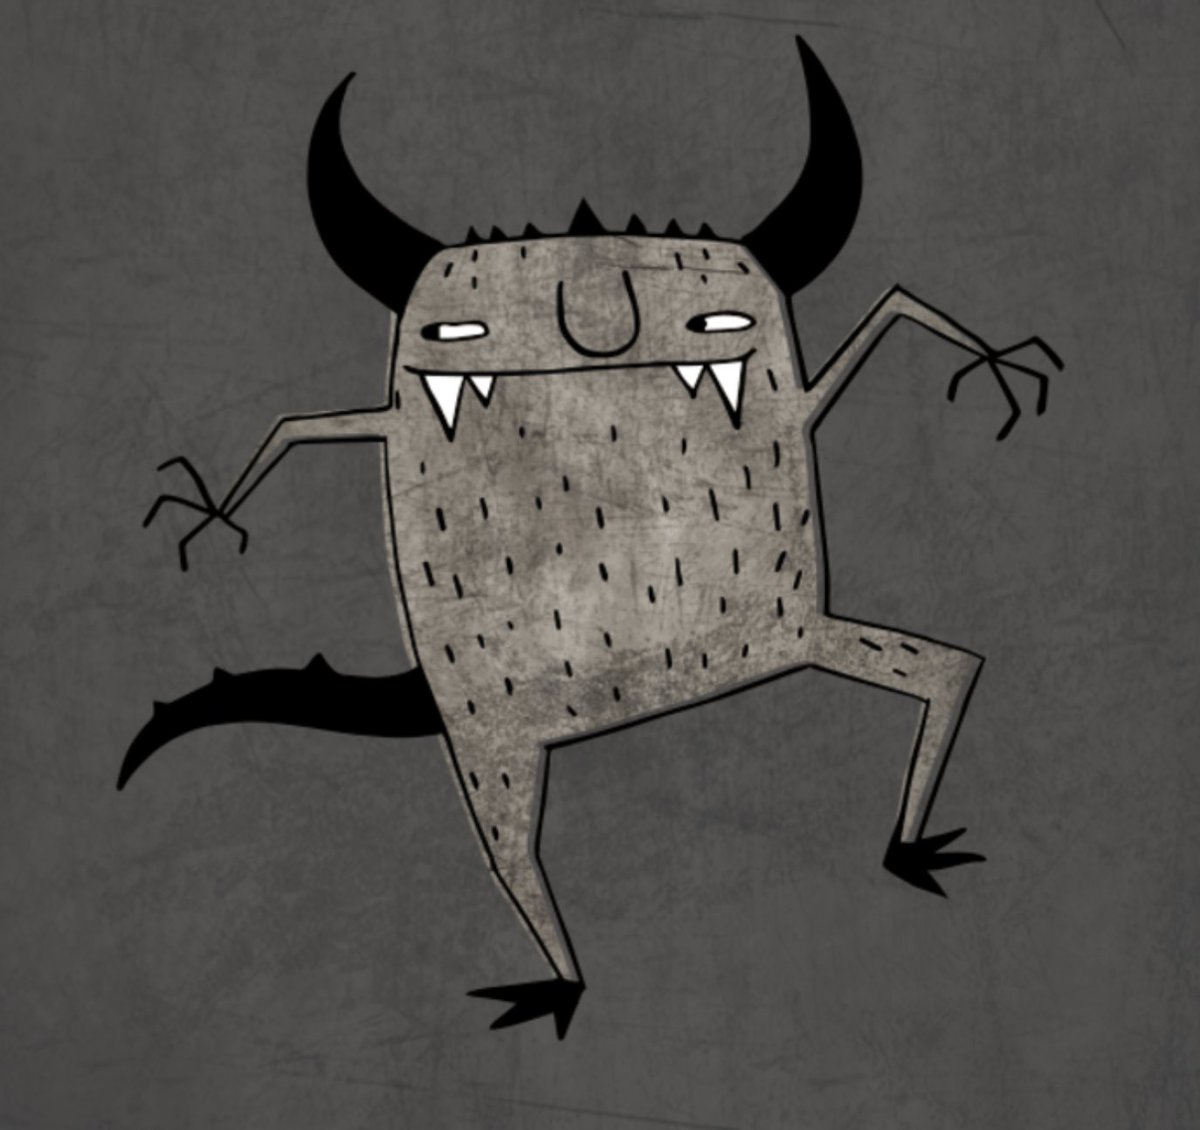 Draw your own monster. Could be any kind of original creation. Then add your character here: https://t.co/vyQ2UR1K2S https://t.co/nthH2VSpDu